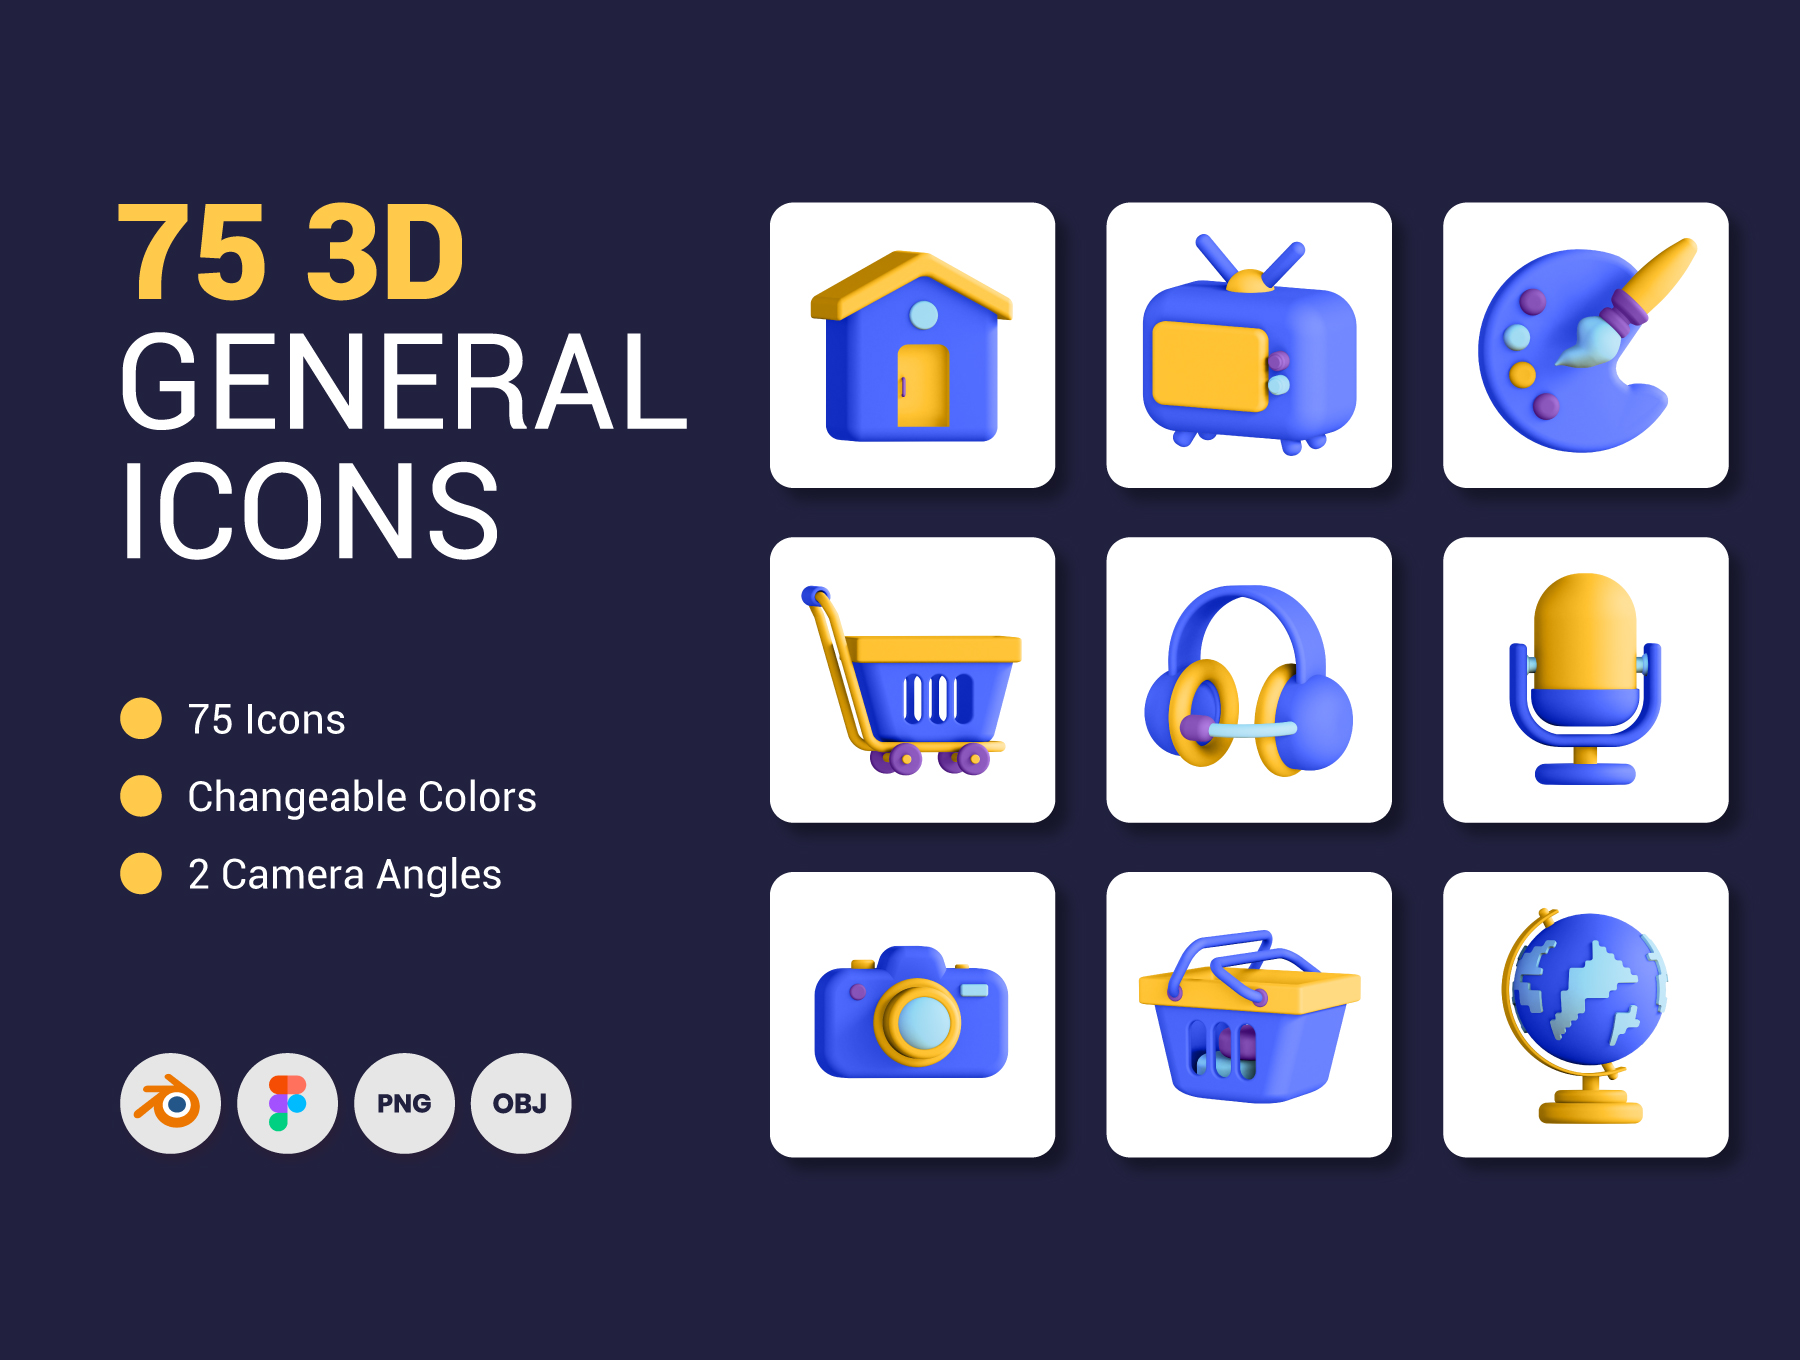 [VIP] 75 3D General Icons